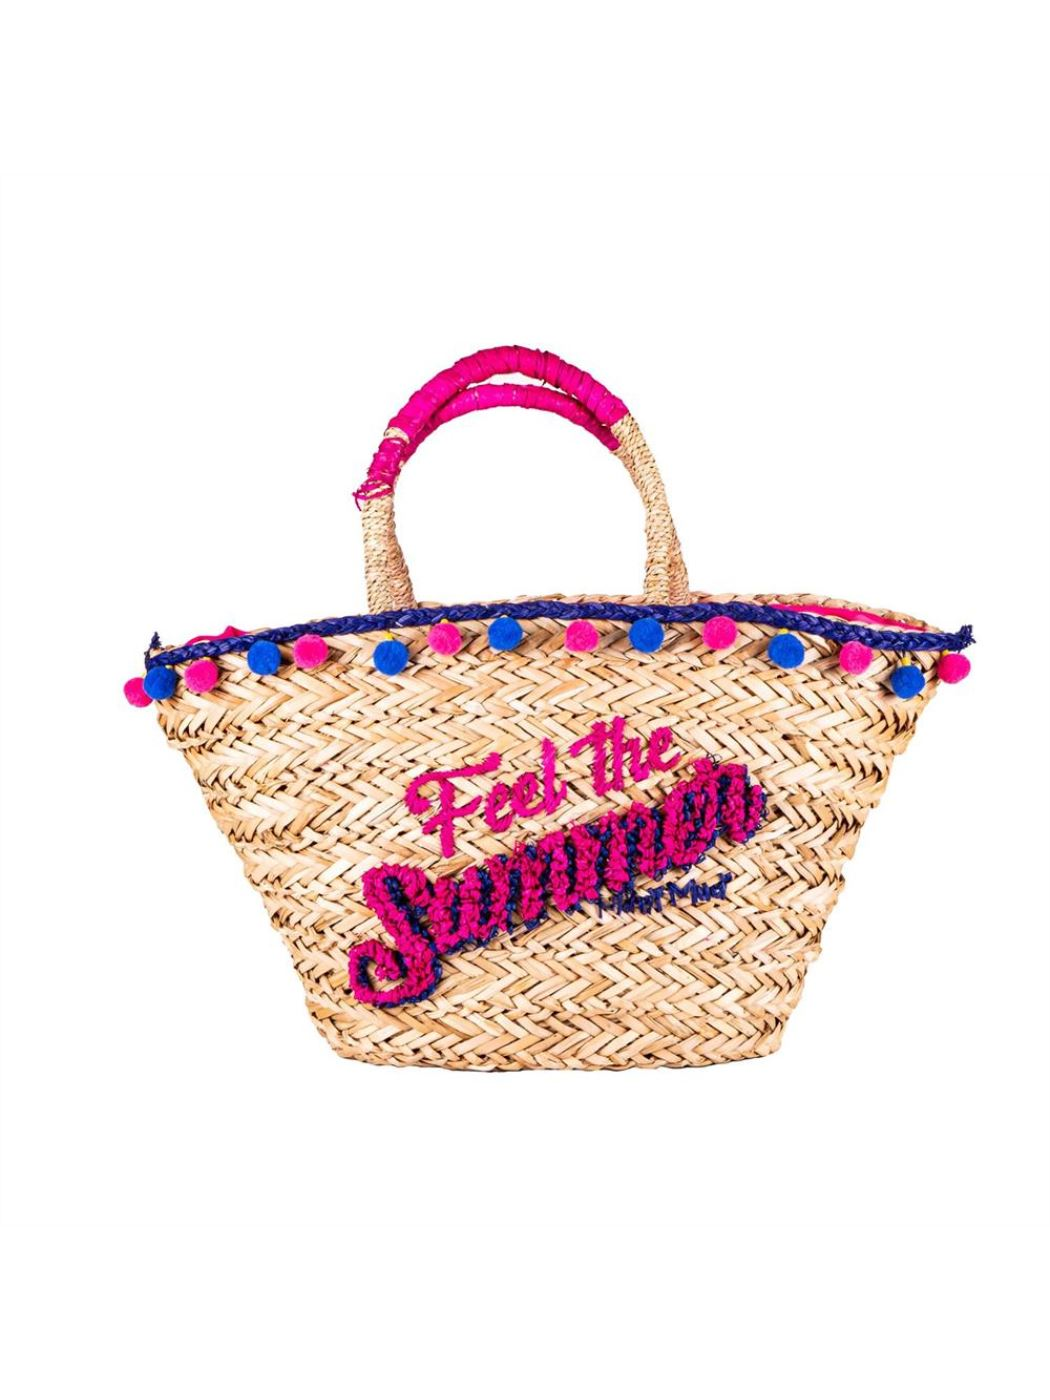 "BORSA MARE PAGLIA ""FEEL THE SUMMER"""